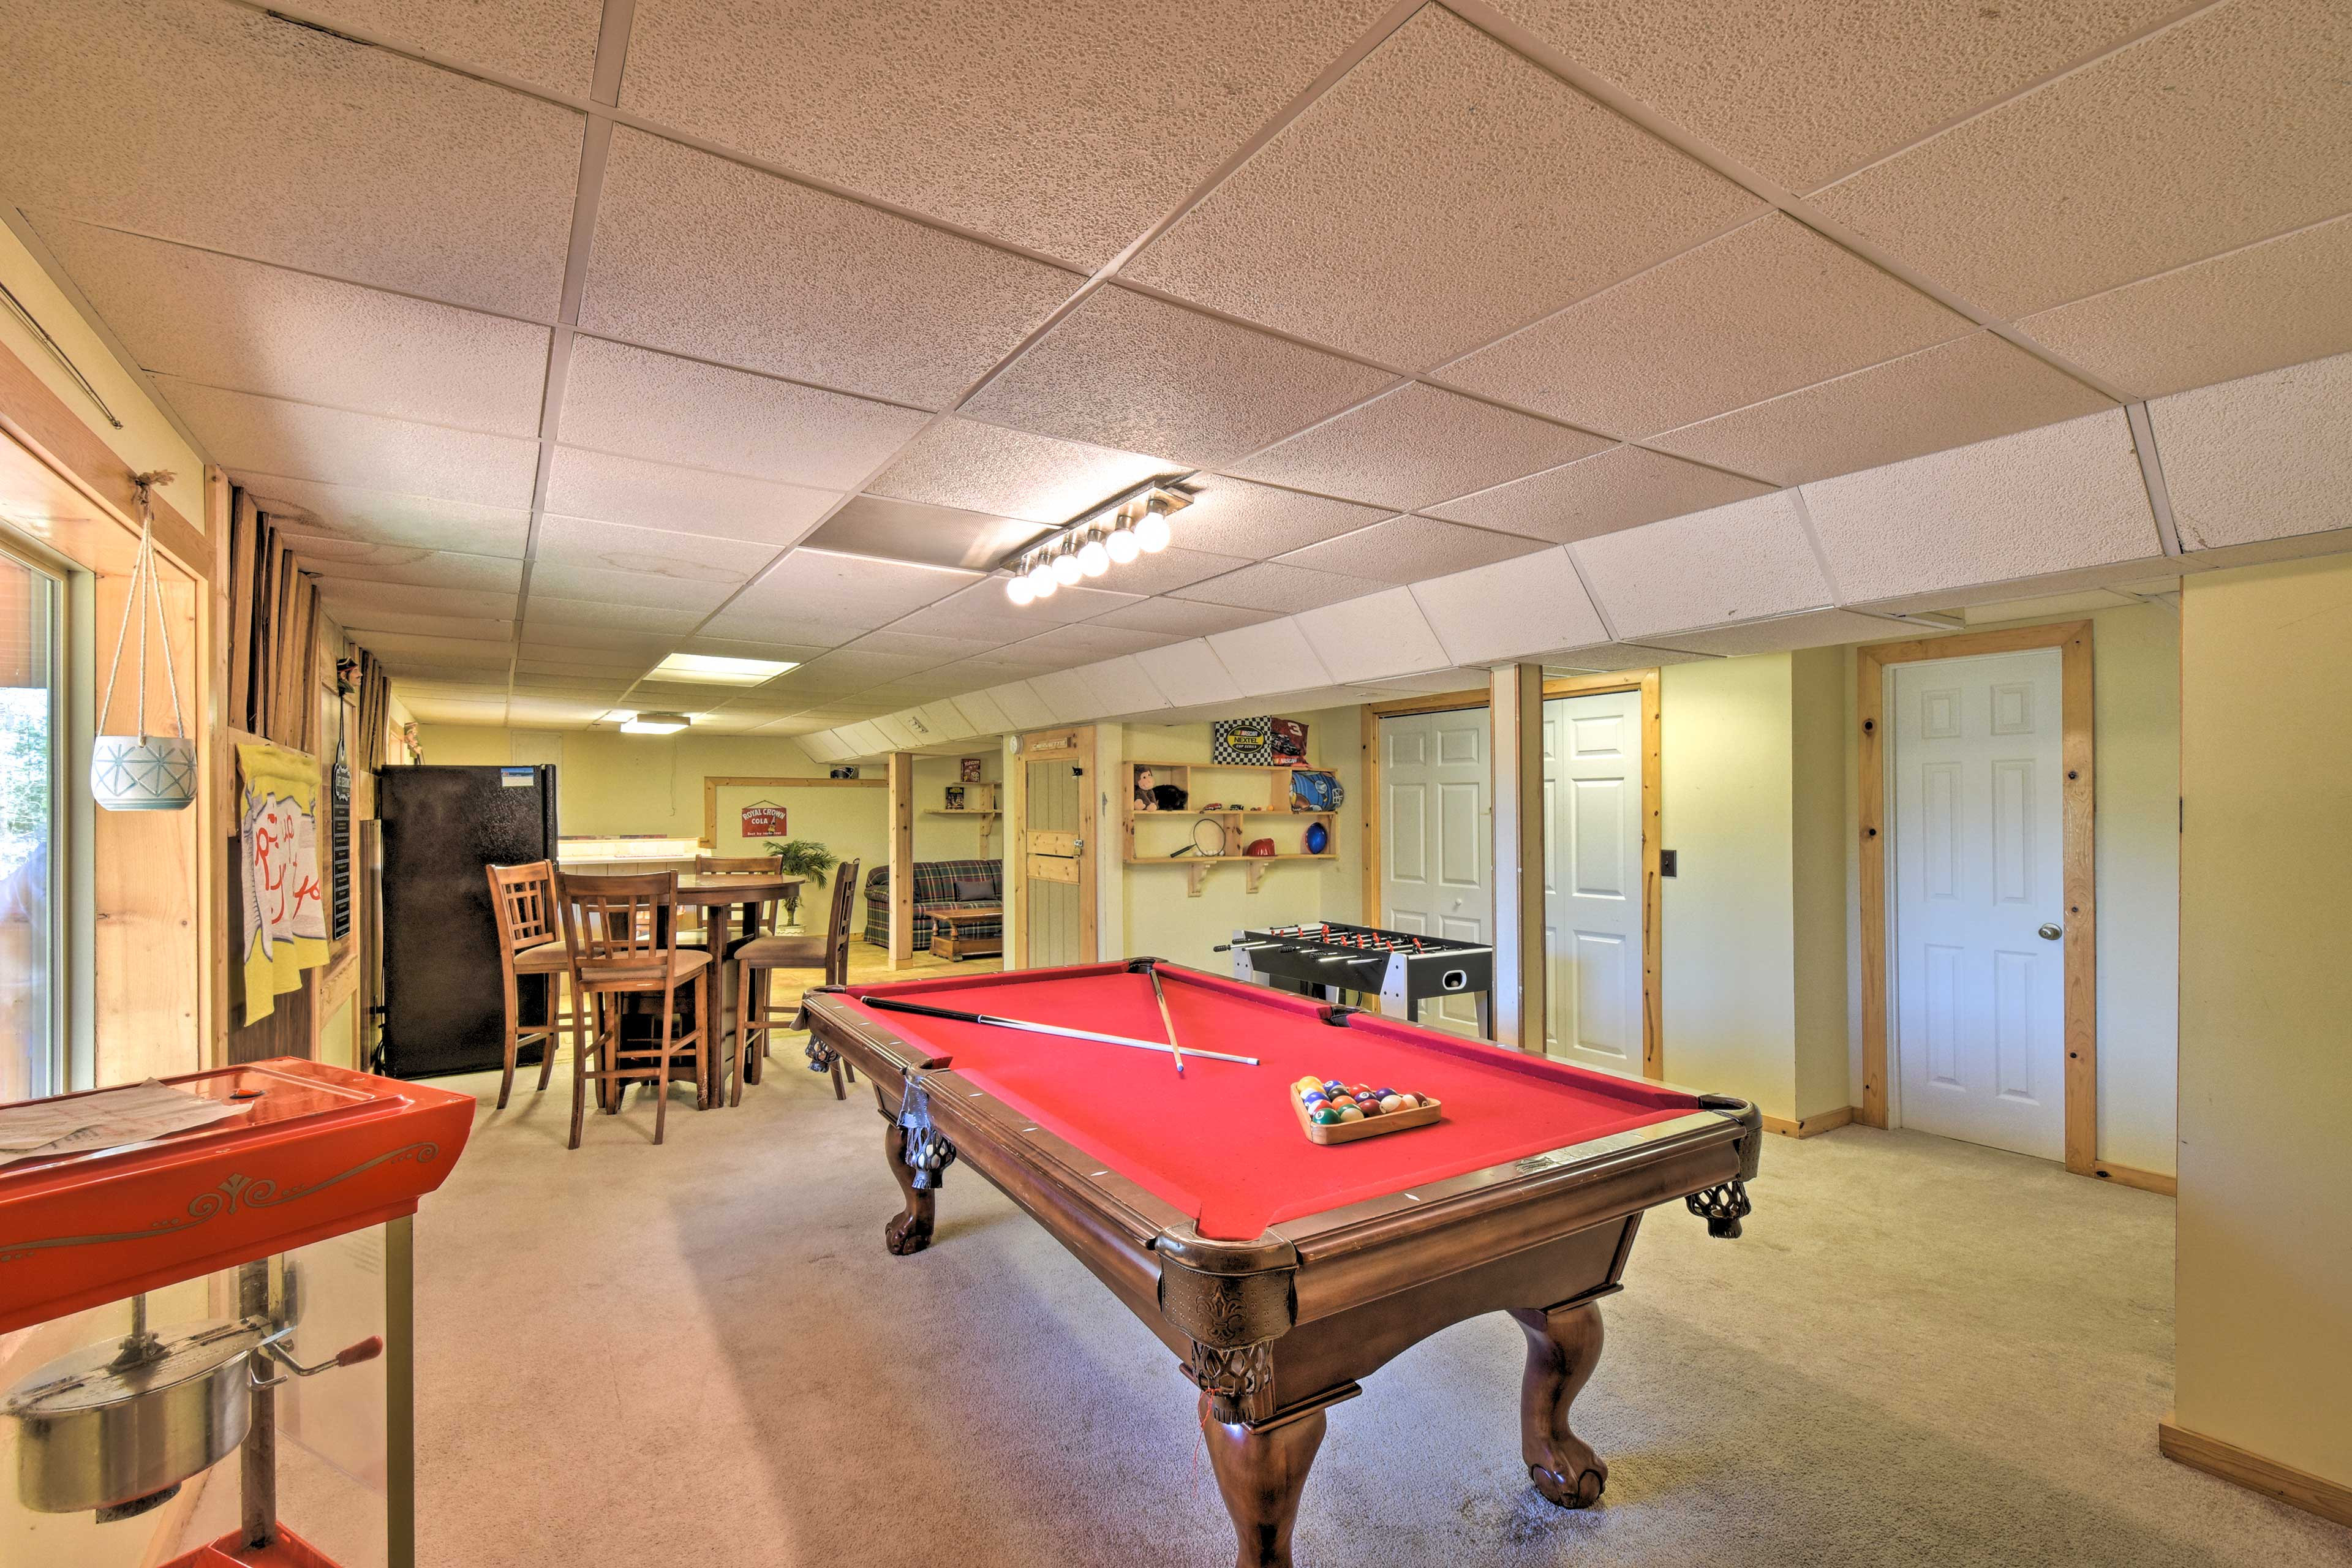 With darts, a pool table, and ample board games, you'll never be bored!